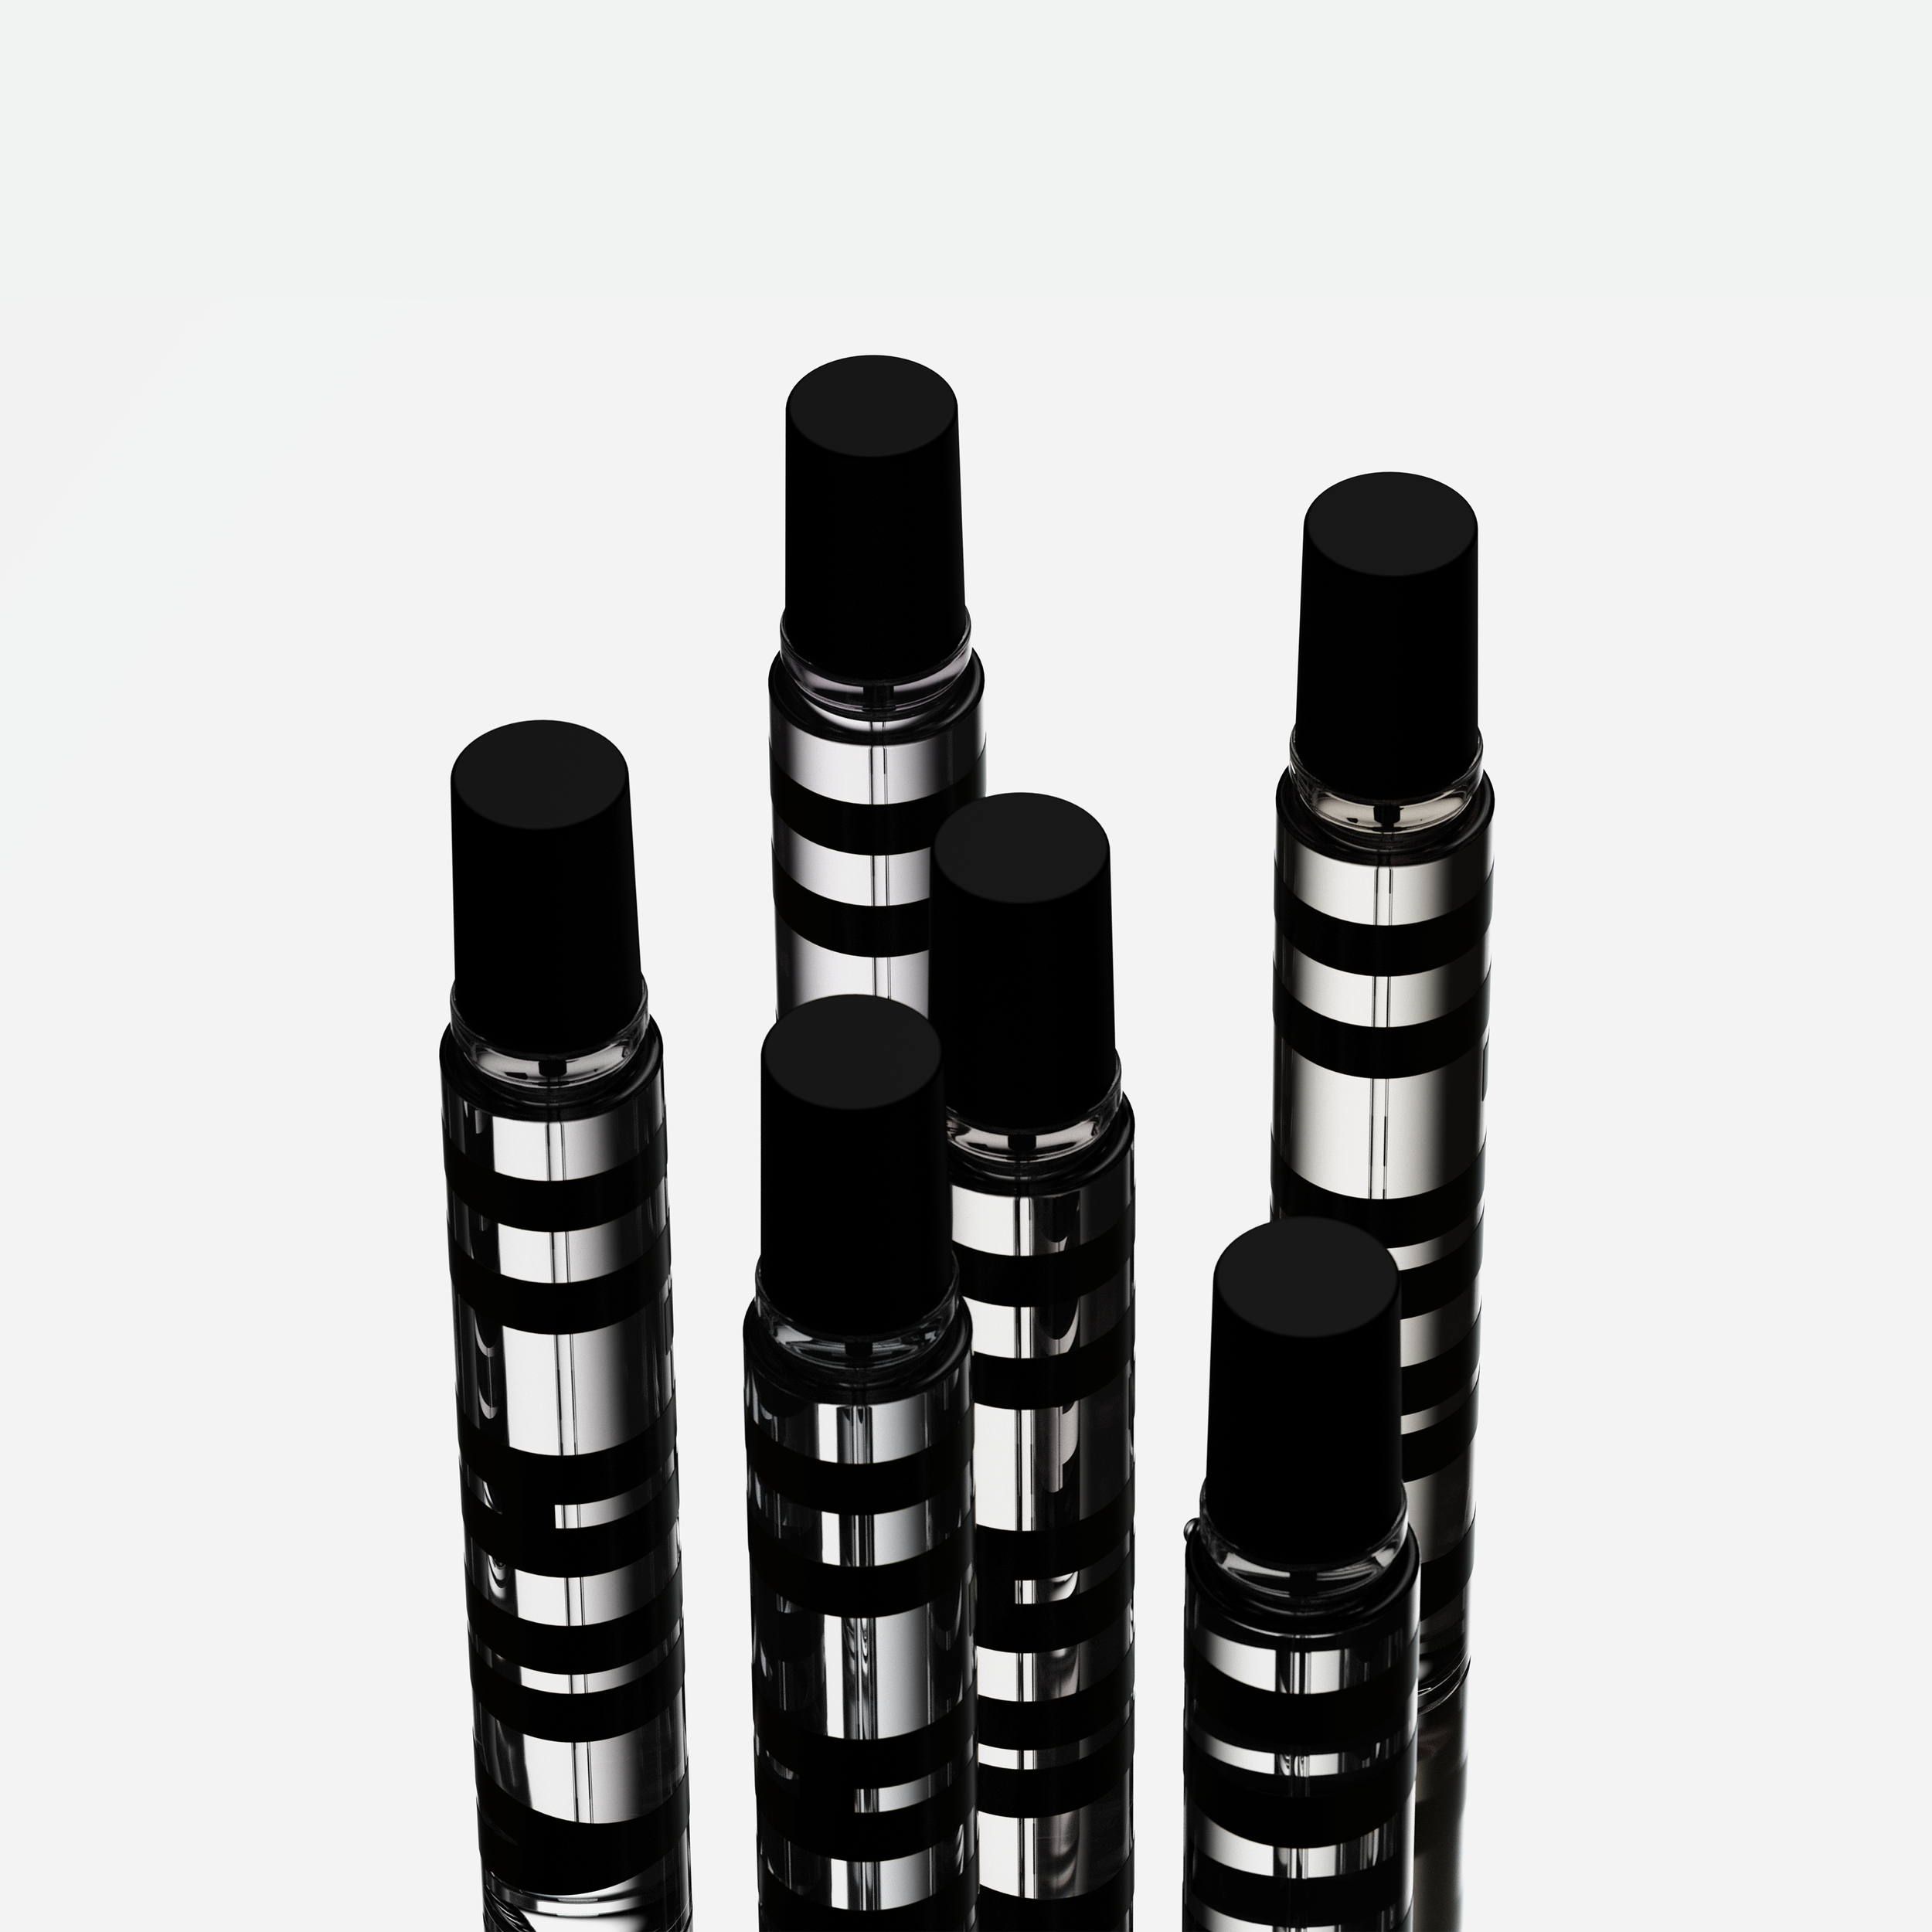 Niche Reimagined, Yohji Yamamoto Parfums / World Brand & Packaging Design Society